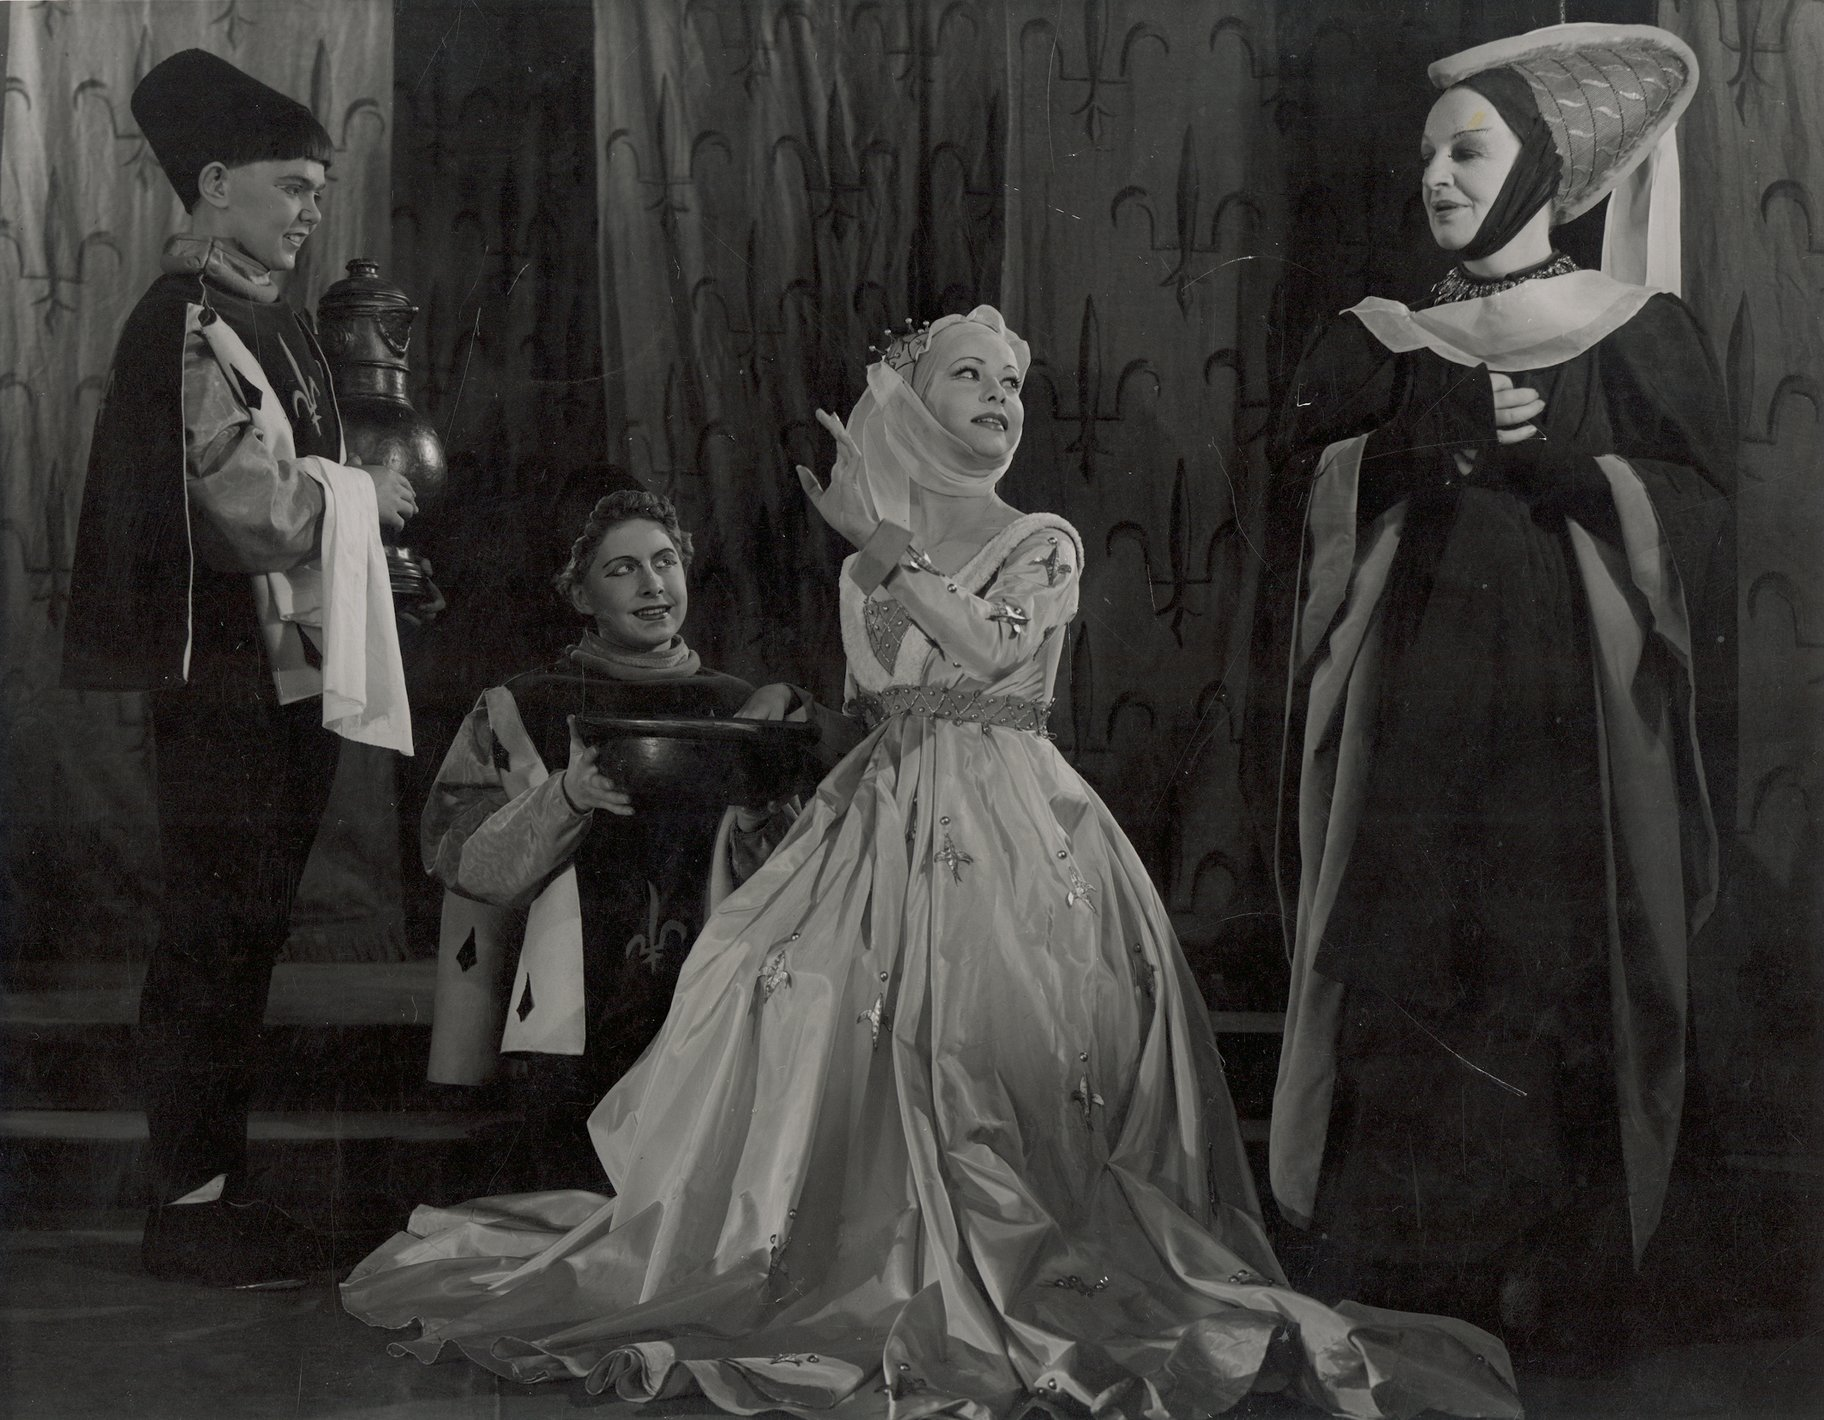 Katherine sits down, dressed in white silk, as her maid Alice stands beside her and they practice English, in the 1951 production of Henry V